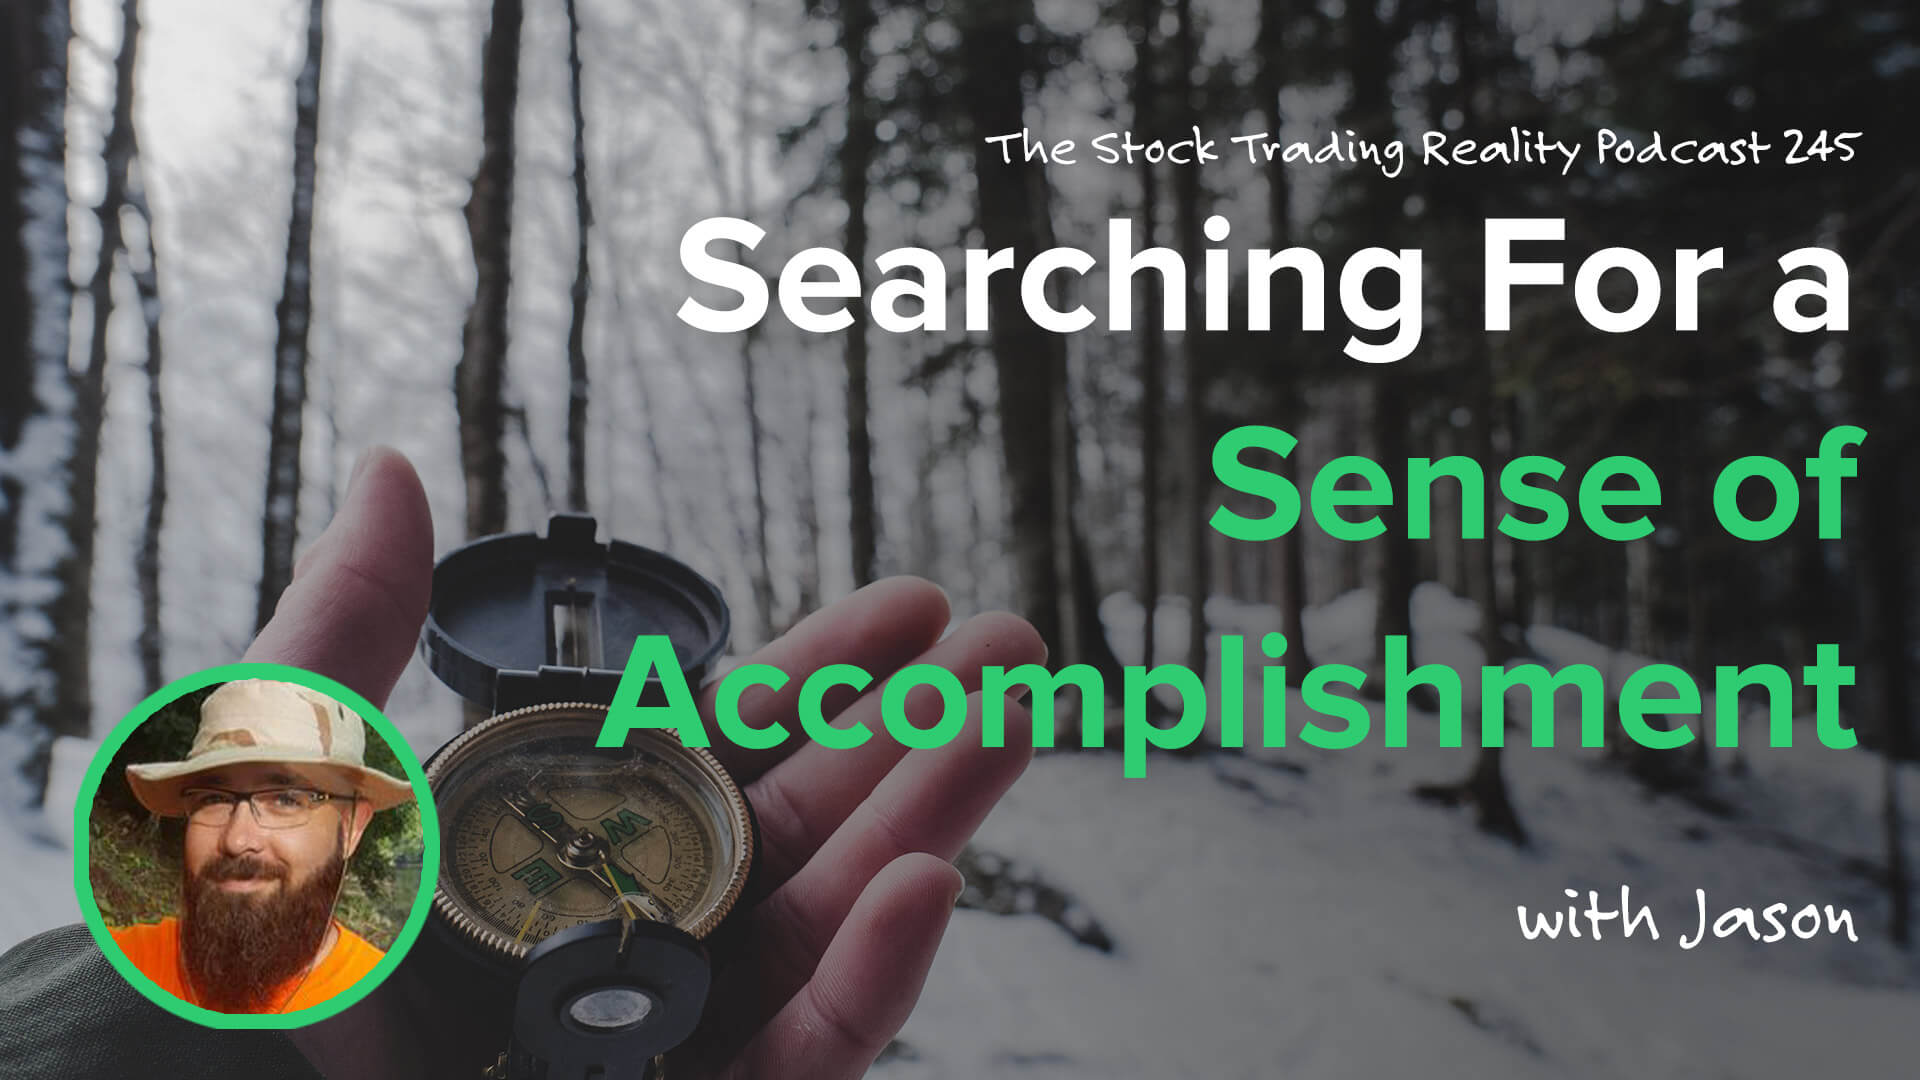 STR 245: Searching For a Sense of Accomplishment